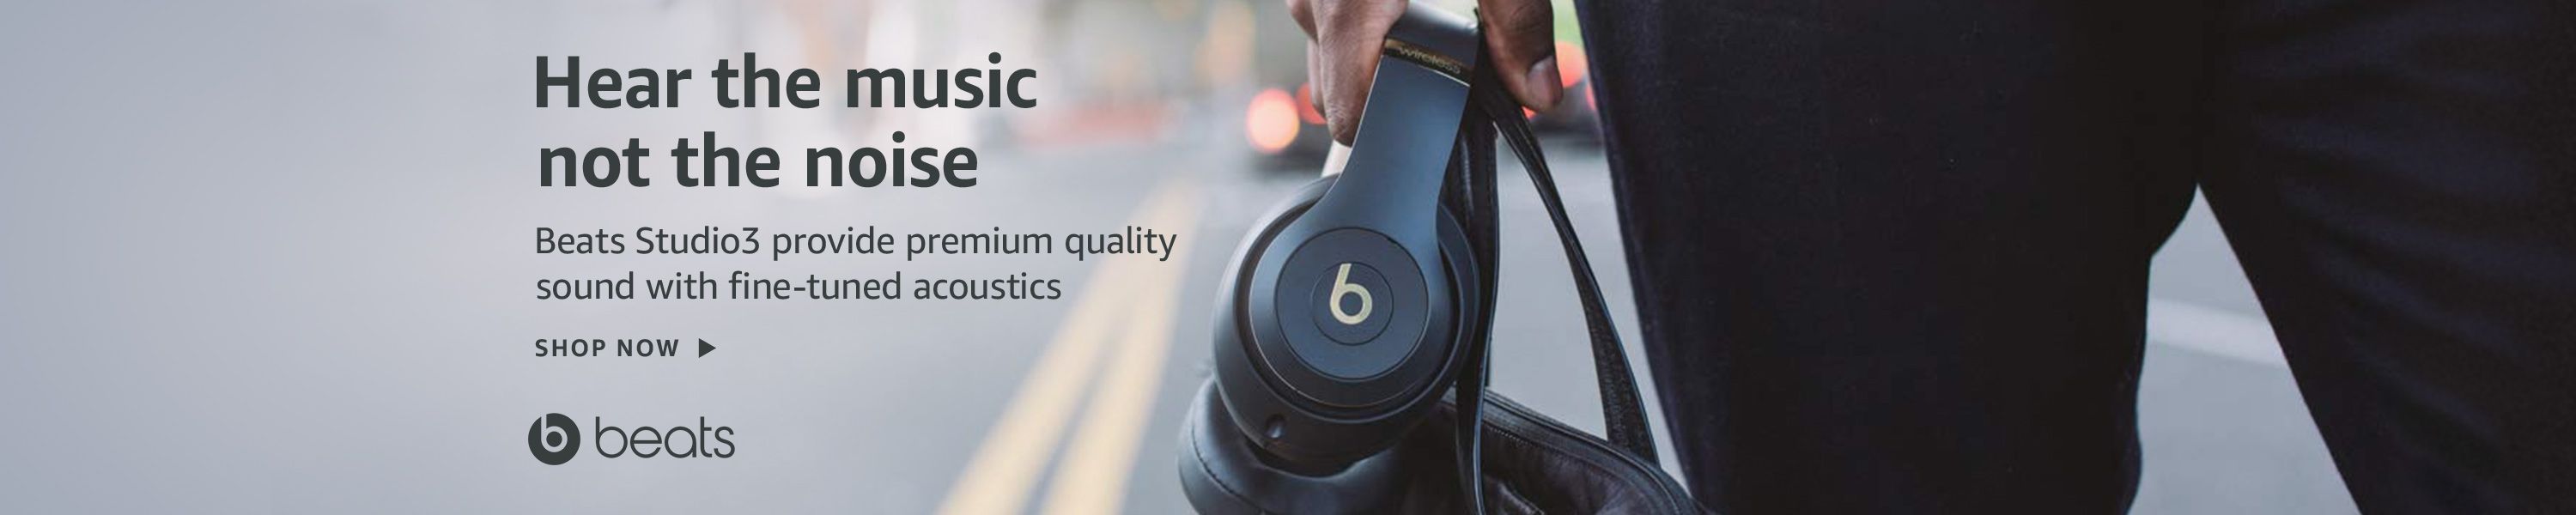 Beats Studio3 Wireless noise canceling headphones